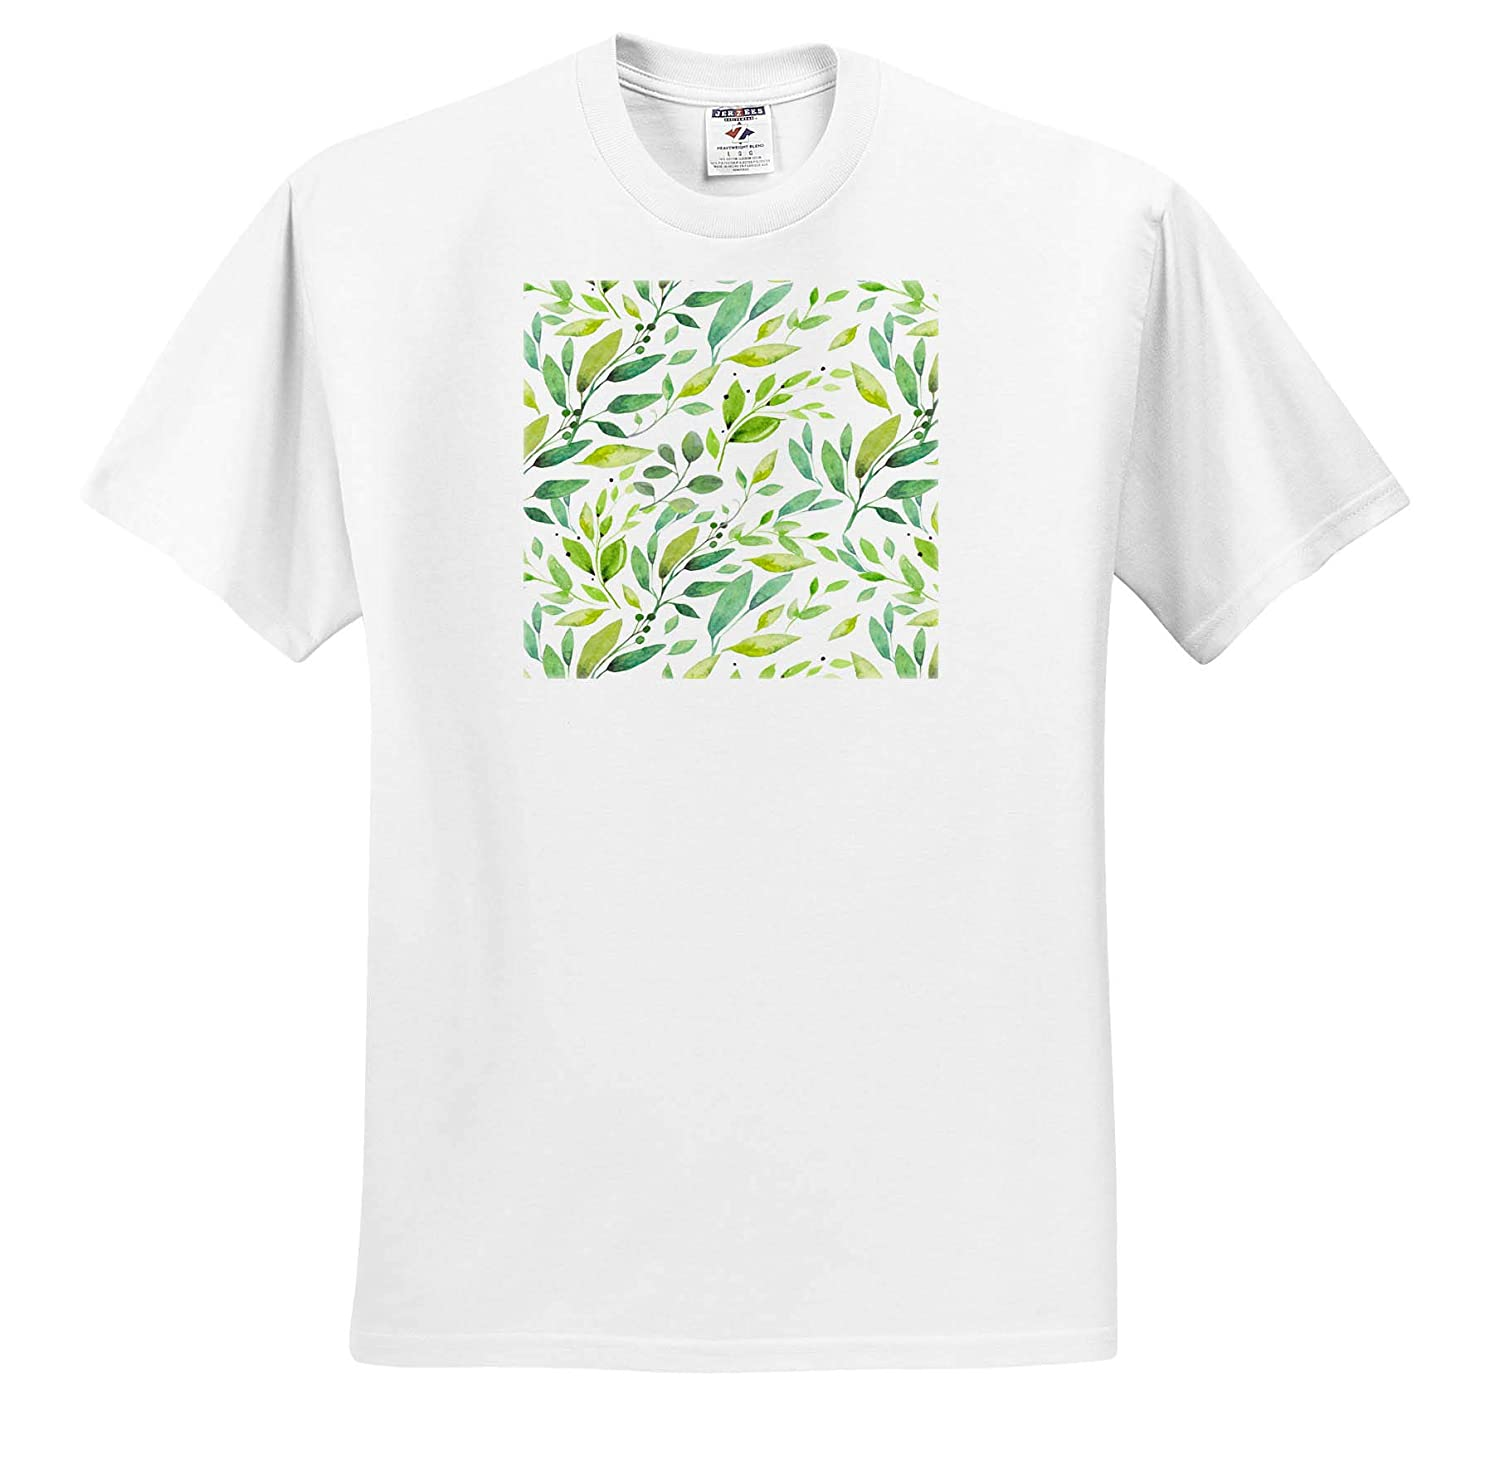 ts/_317625 Patterns Adult T-Shirt XL 3dRose Anne Marie Baugh Pretty Green Image of Watercolor Leaves Pattern